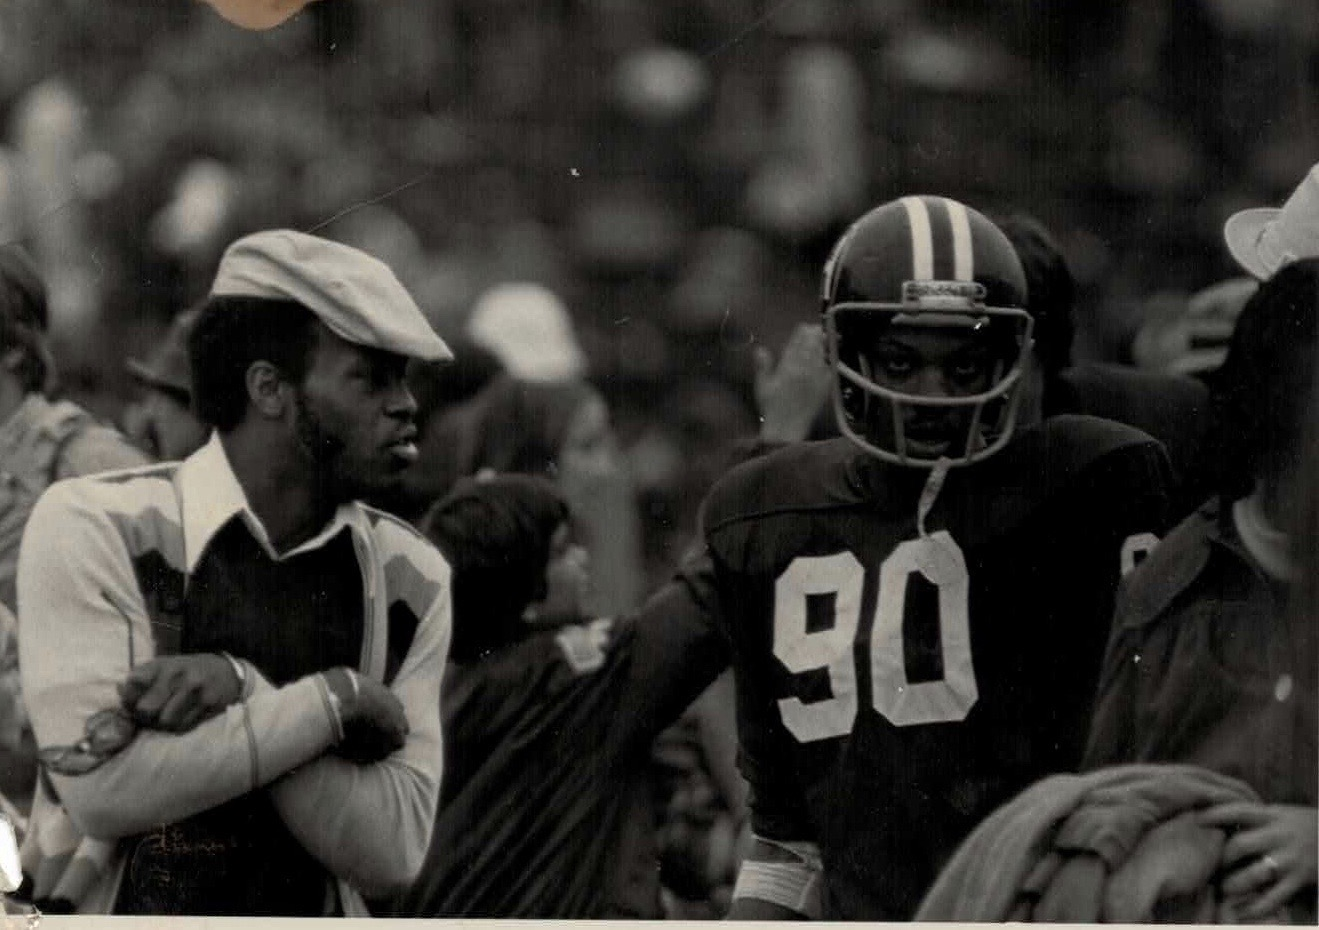 hopdy-and-elam-on-field-1977